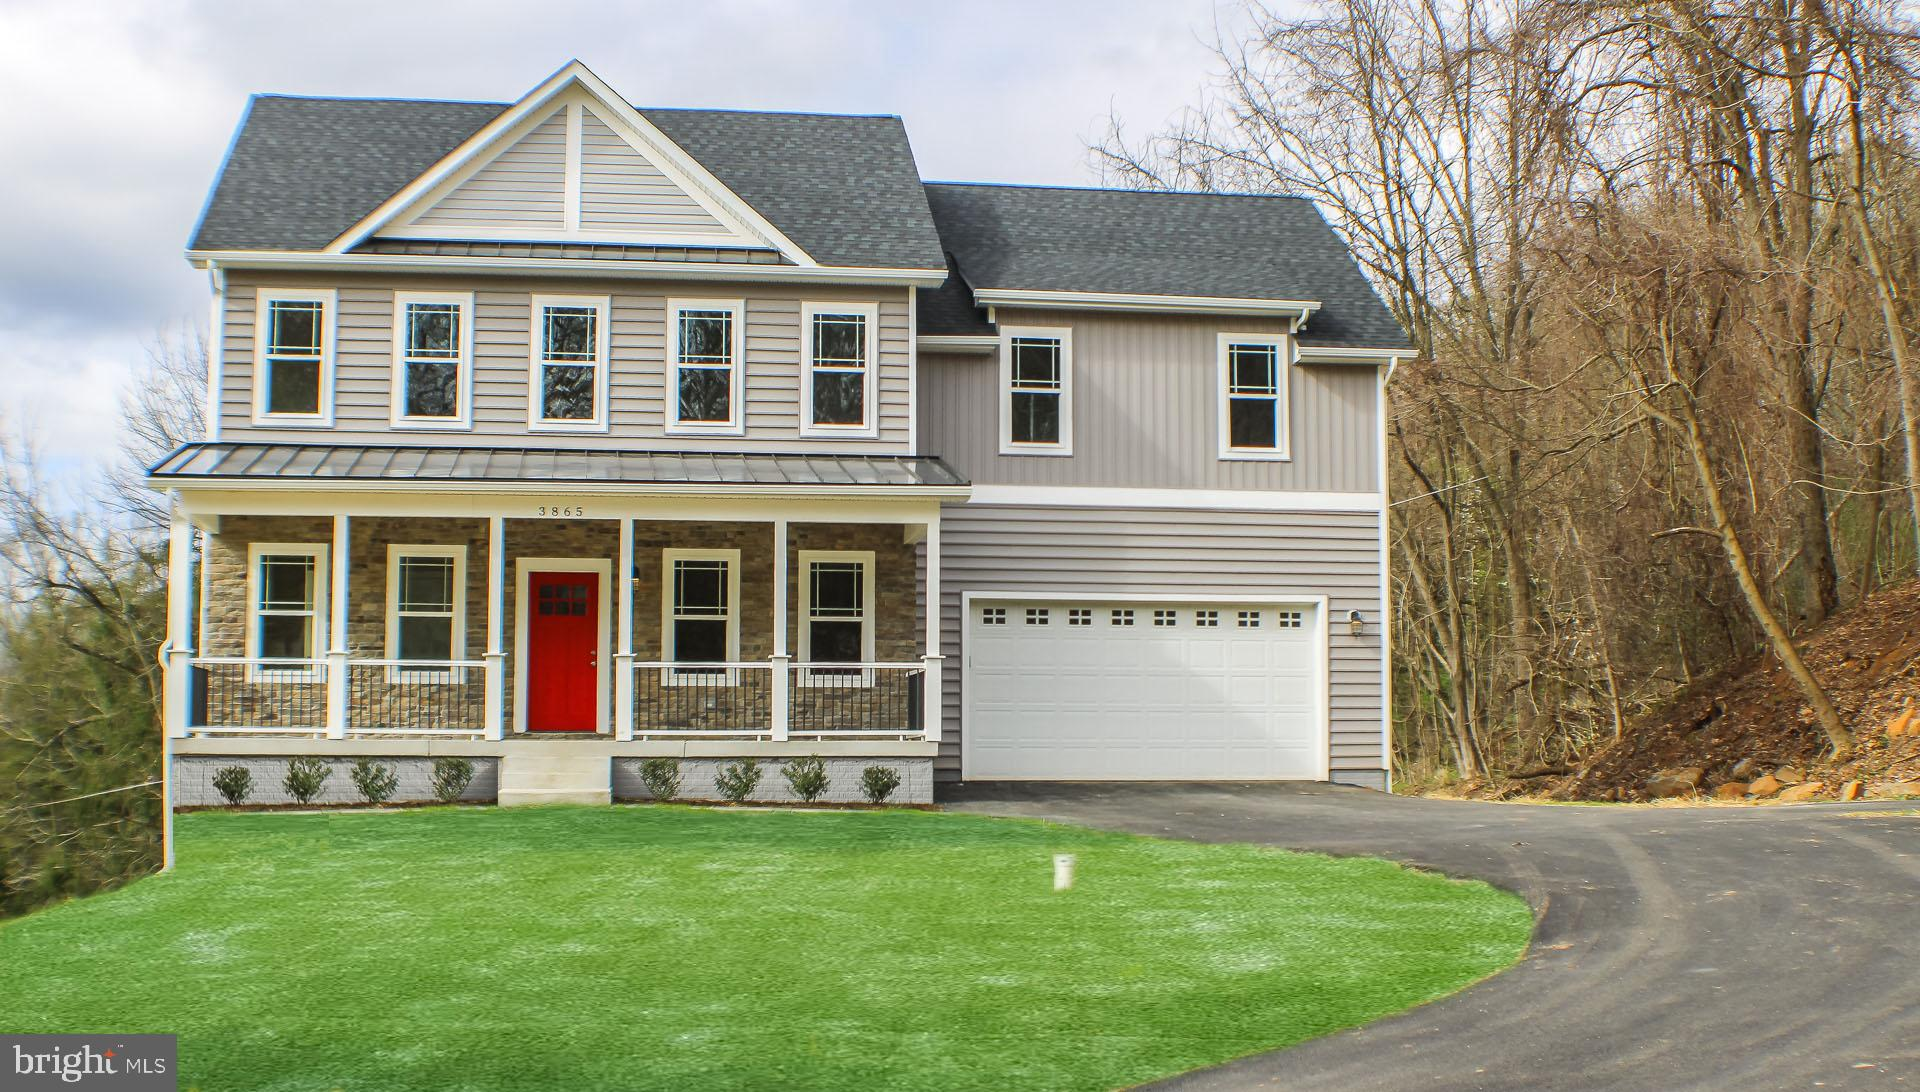 3865 SCHROEDER AVENUE, PERRY HALL, MD 21128